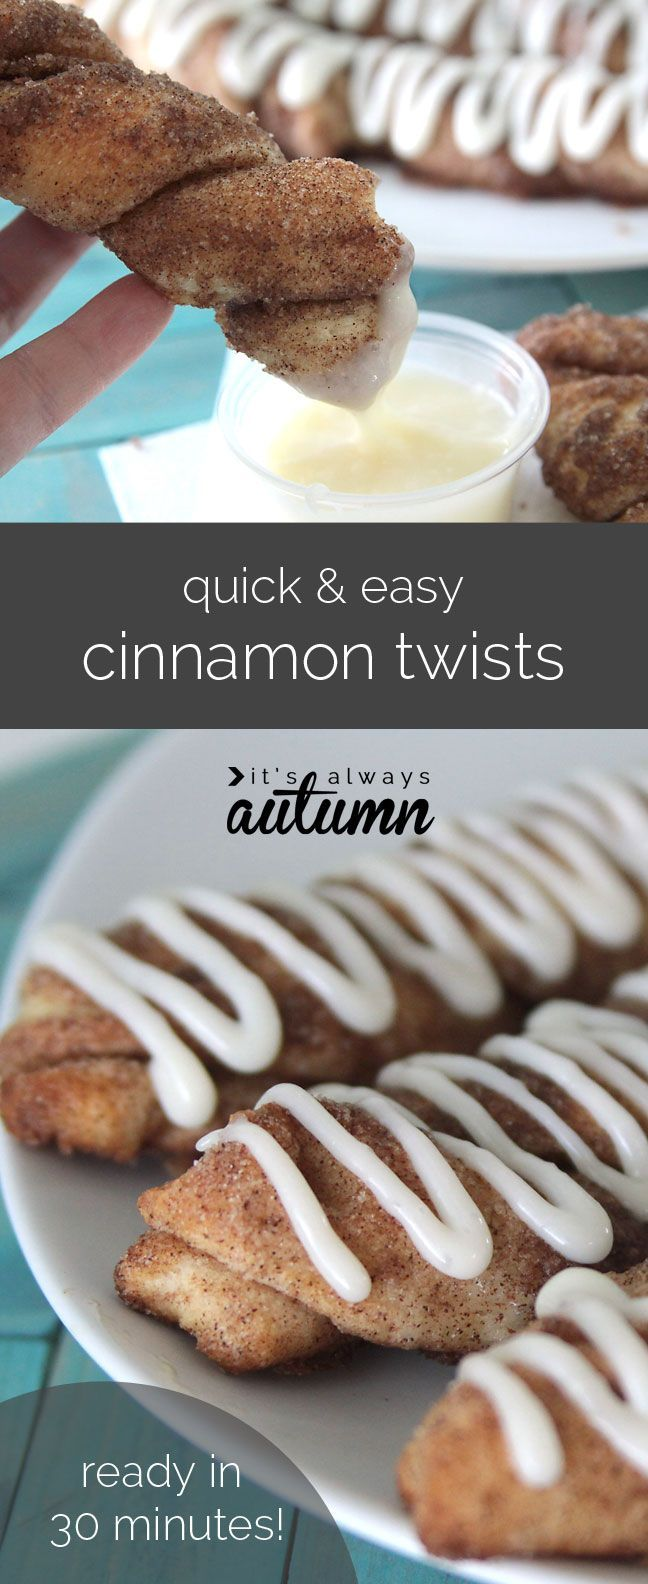 Super easy cinnamon twists are ready in just 30 minutes! @itsalwaysautumn